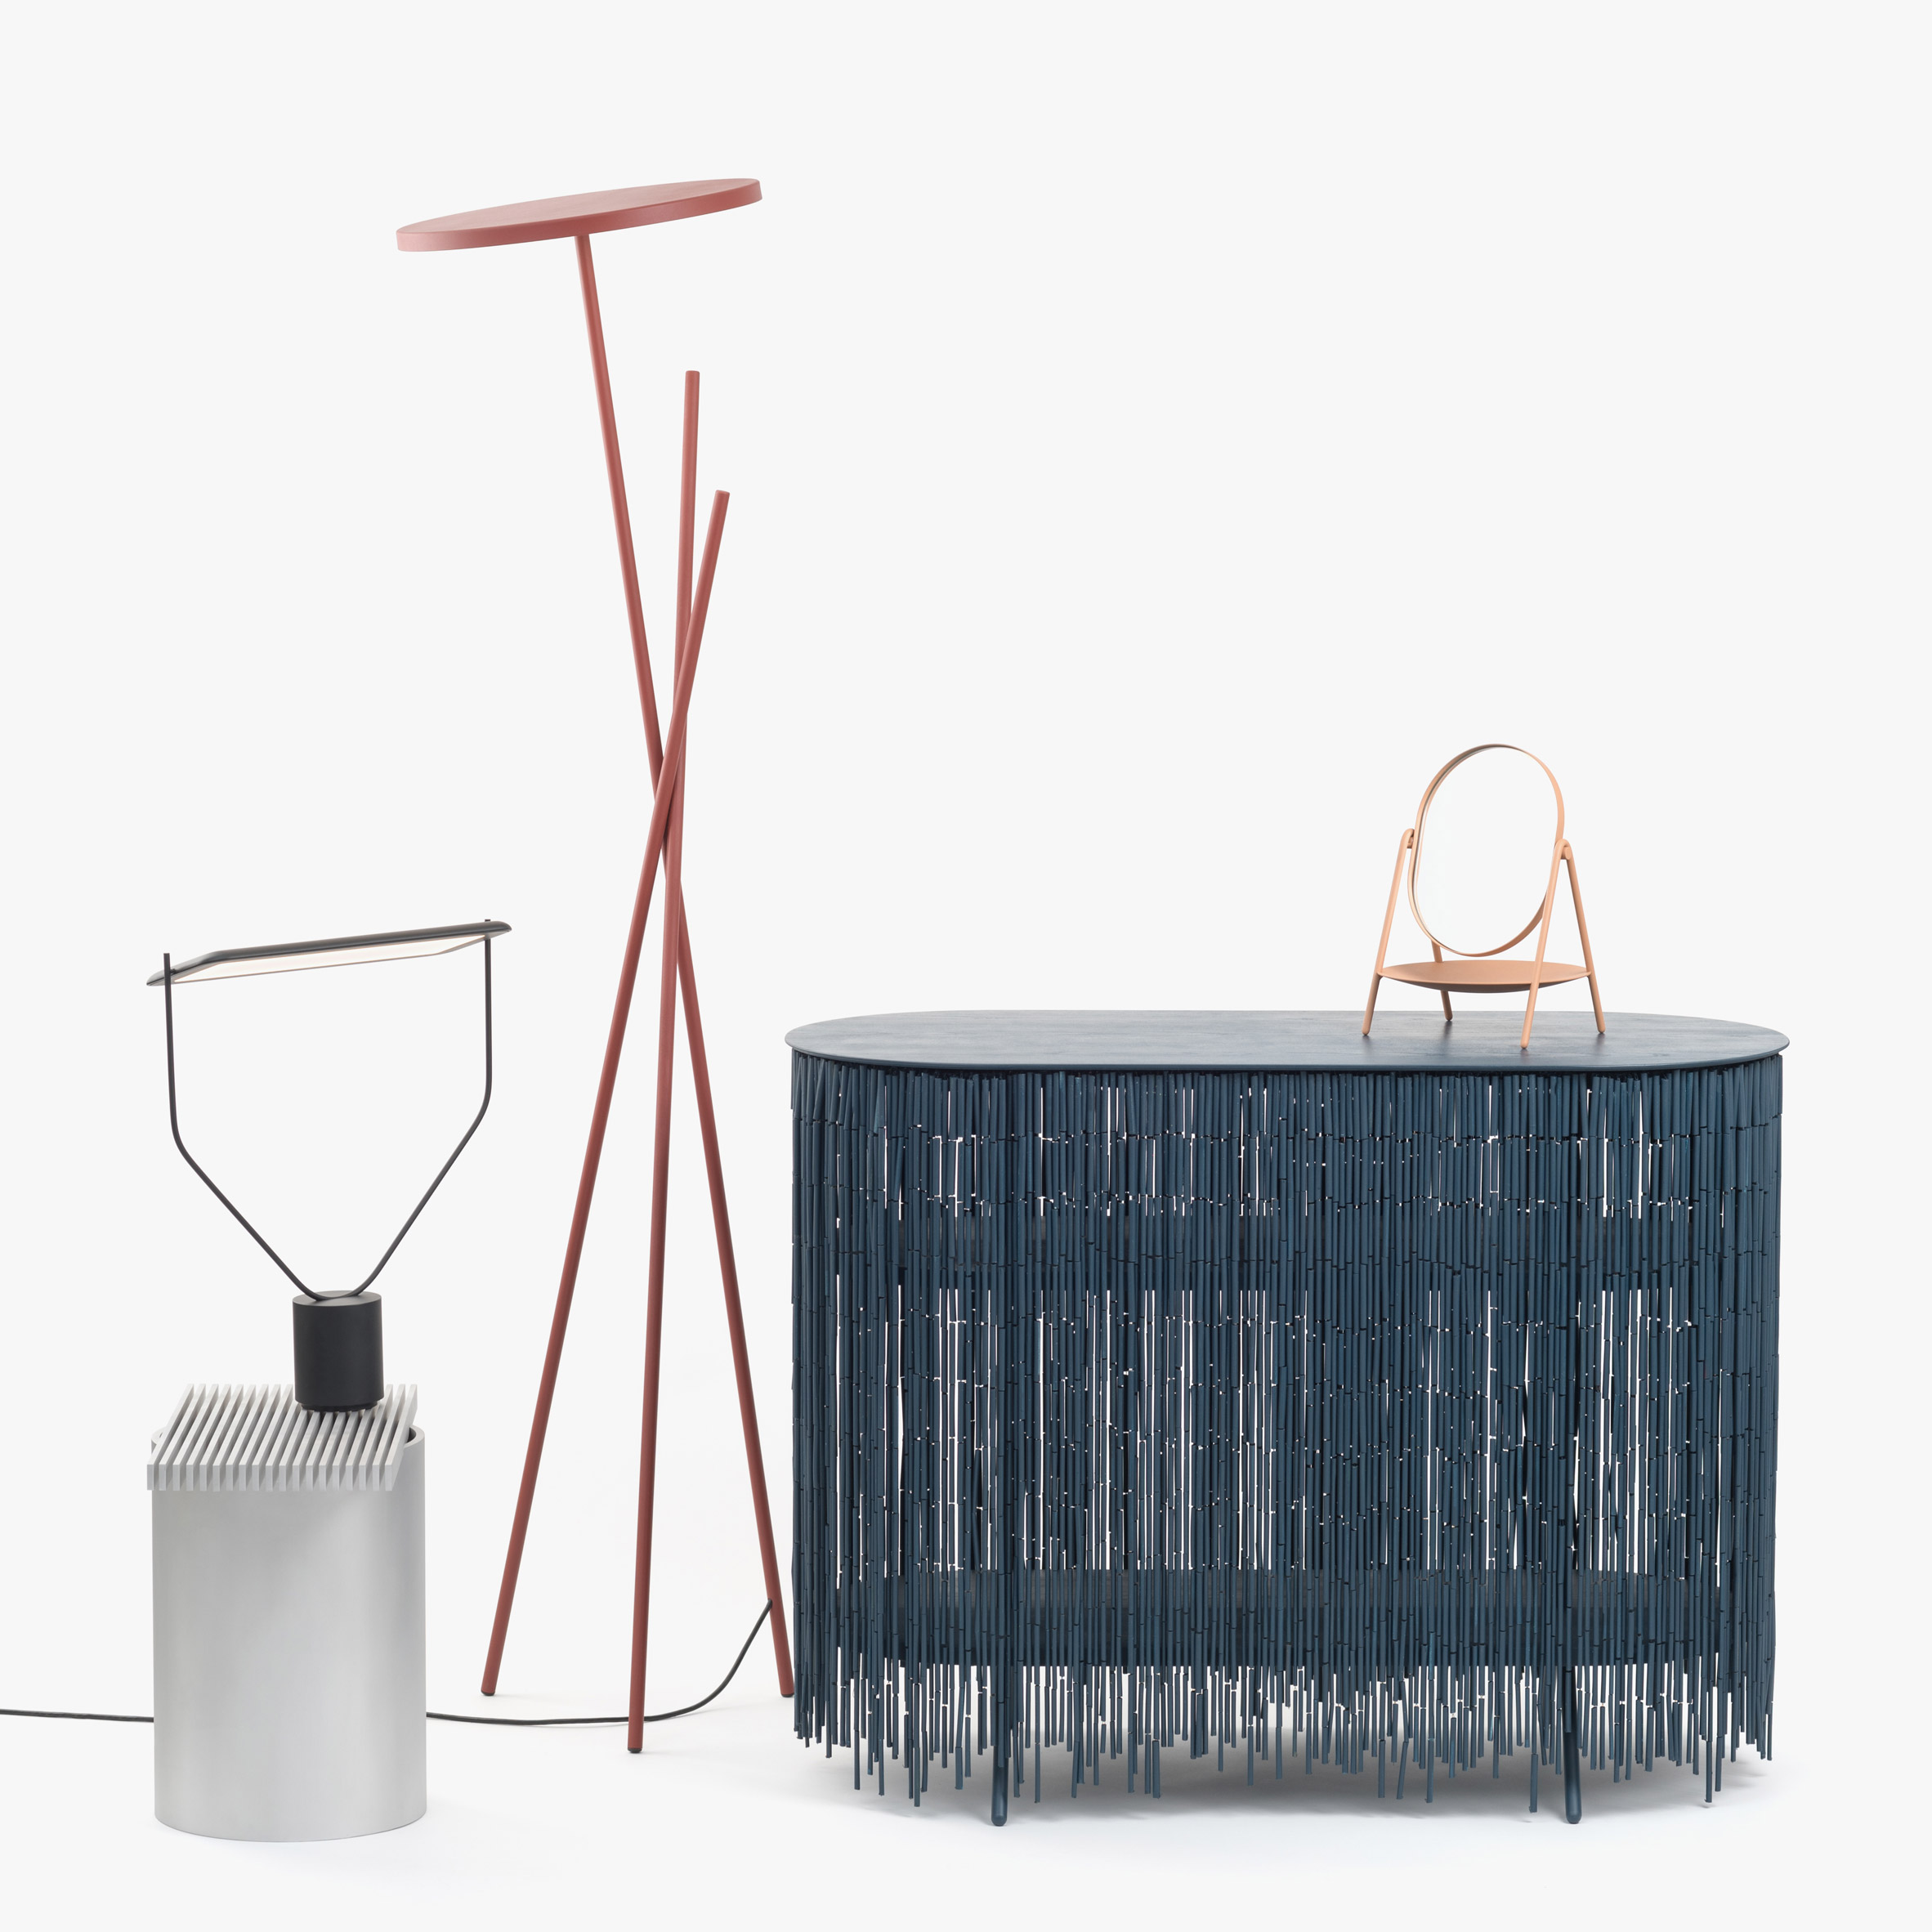 stockholm-furniture-fair-editors-choice-awards-announced_dezeen_2364_col_2